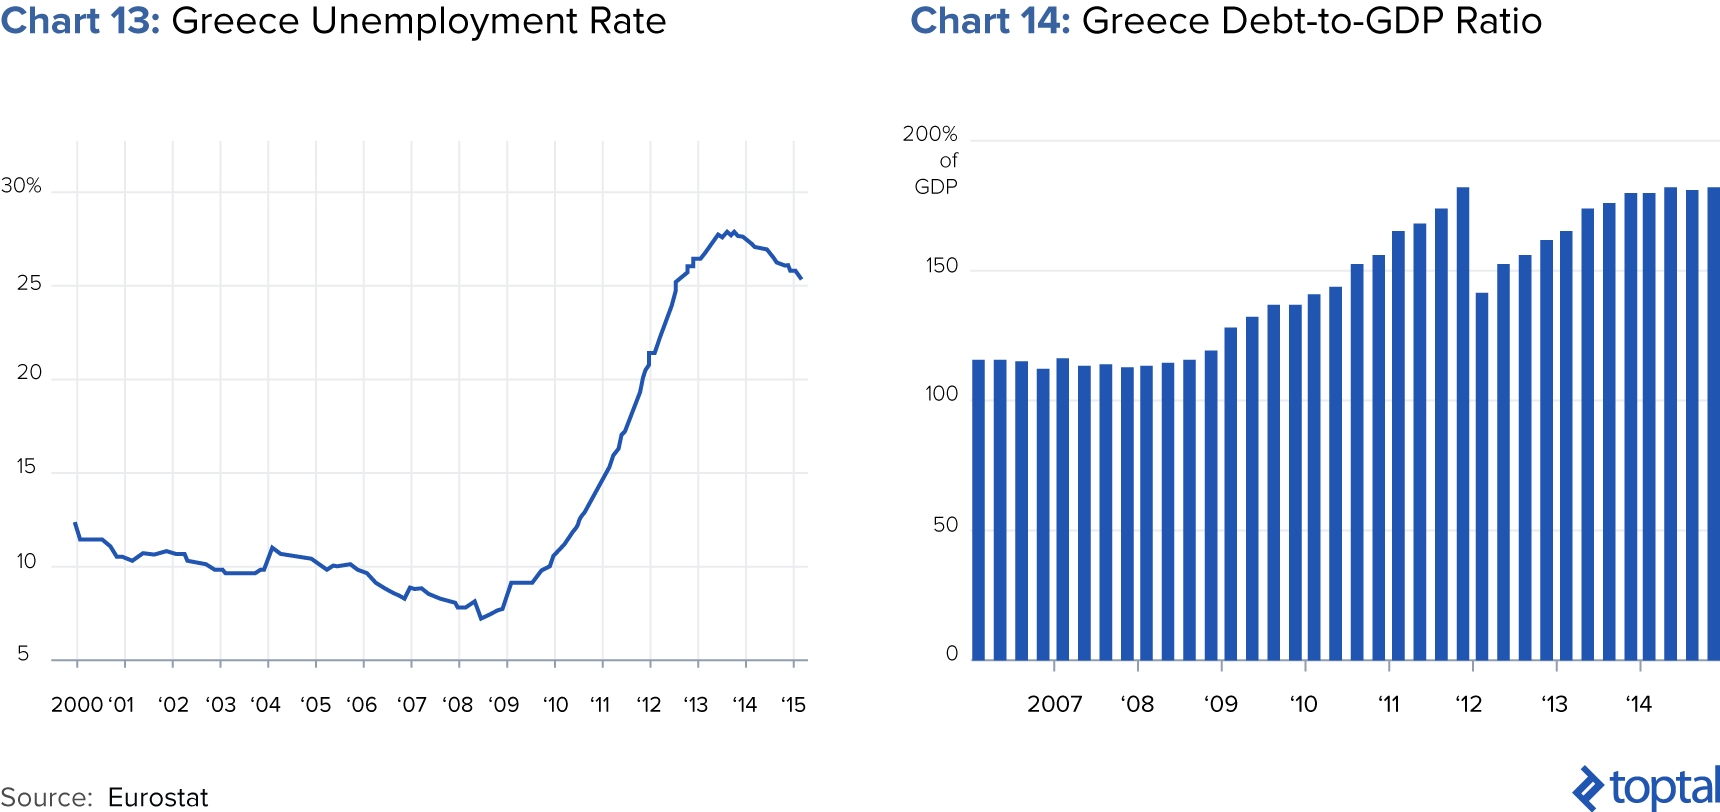 Chart 13: Greece Unemployment Rate; and Chart 14: Greece Debt-to-GDP Ratio